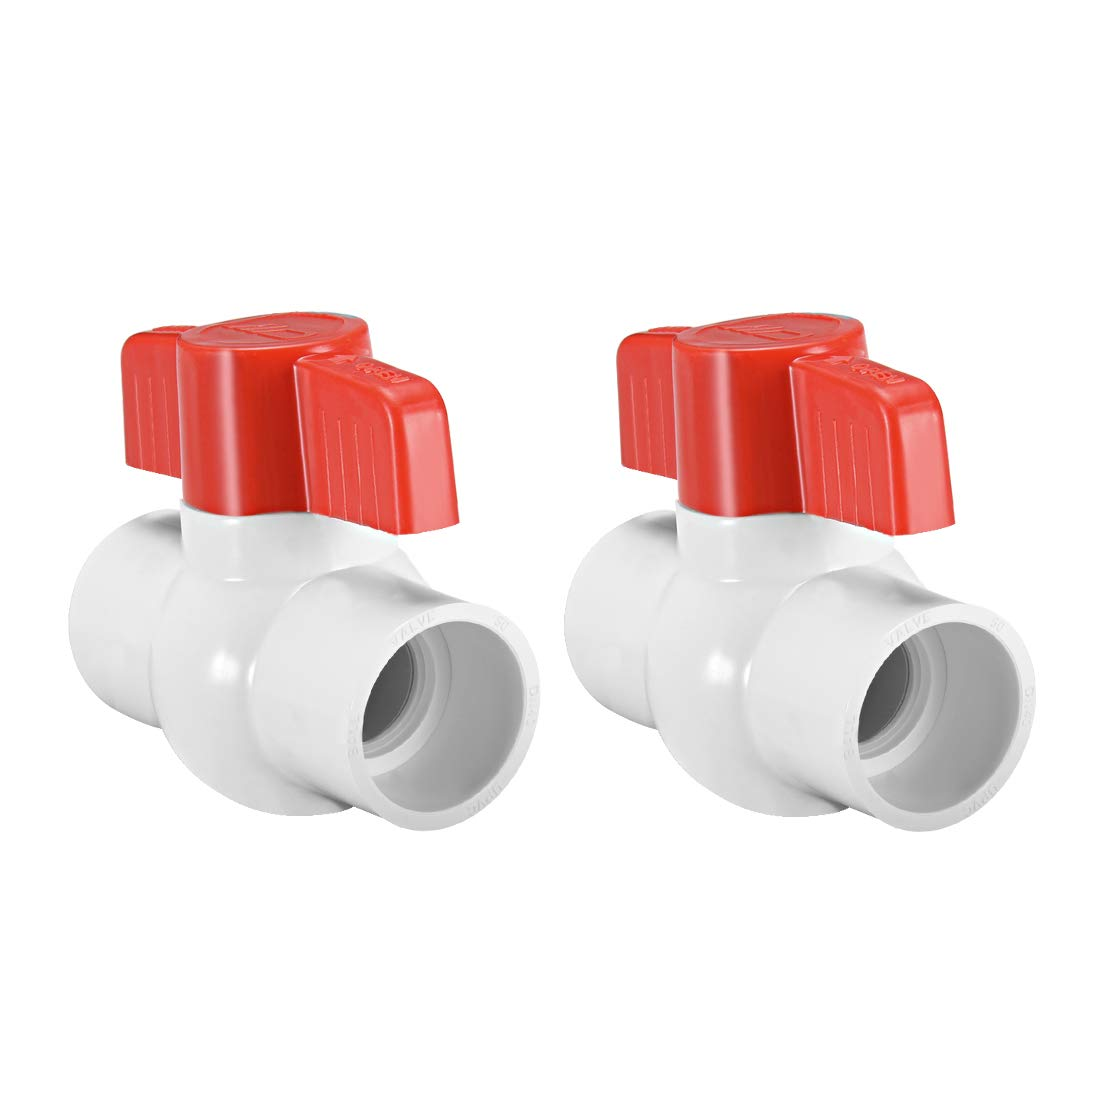 uxcell PVC Ball Valve Supply Pipe Knob Threaded Ends 1 inches Inner Hole Diameter Red White 2Pcs